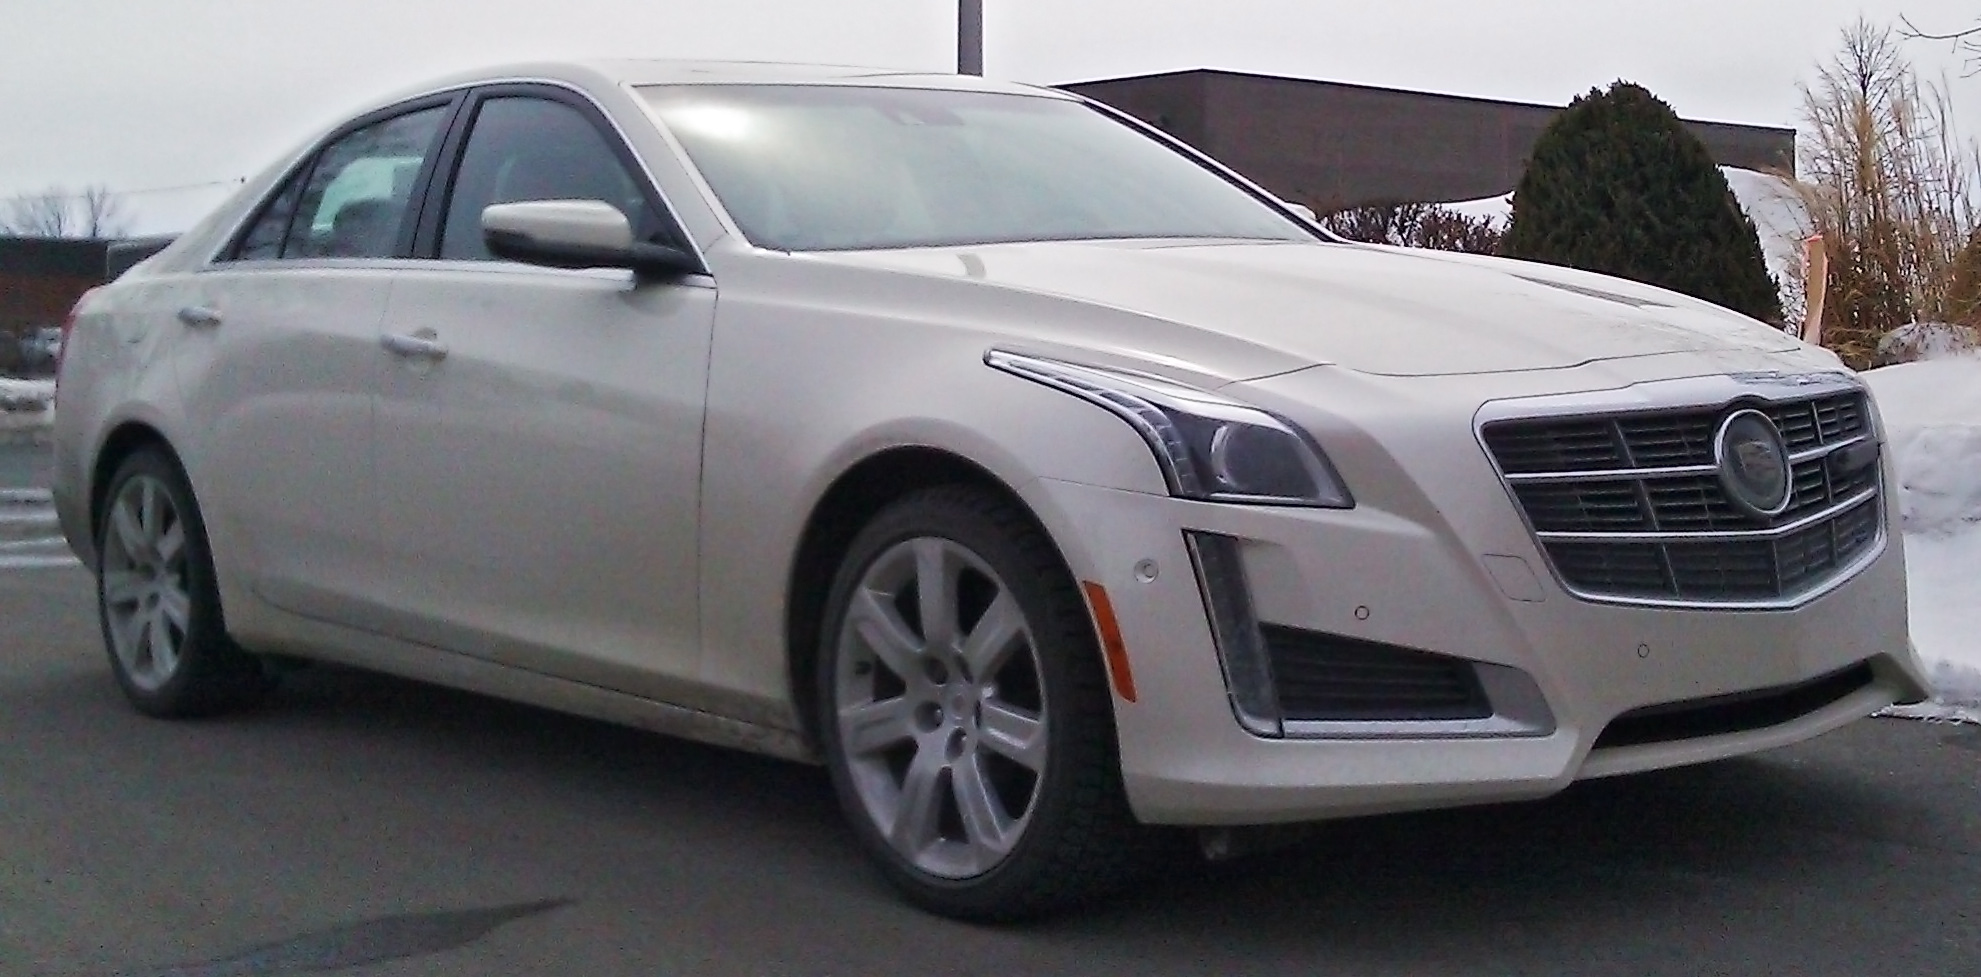 What Does Cts Stand For >> Cadillac Cts Wikipedia